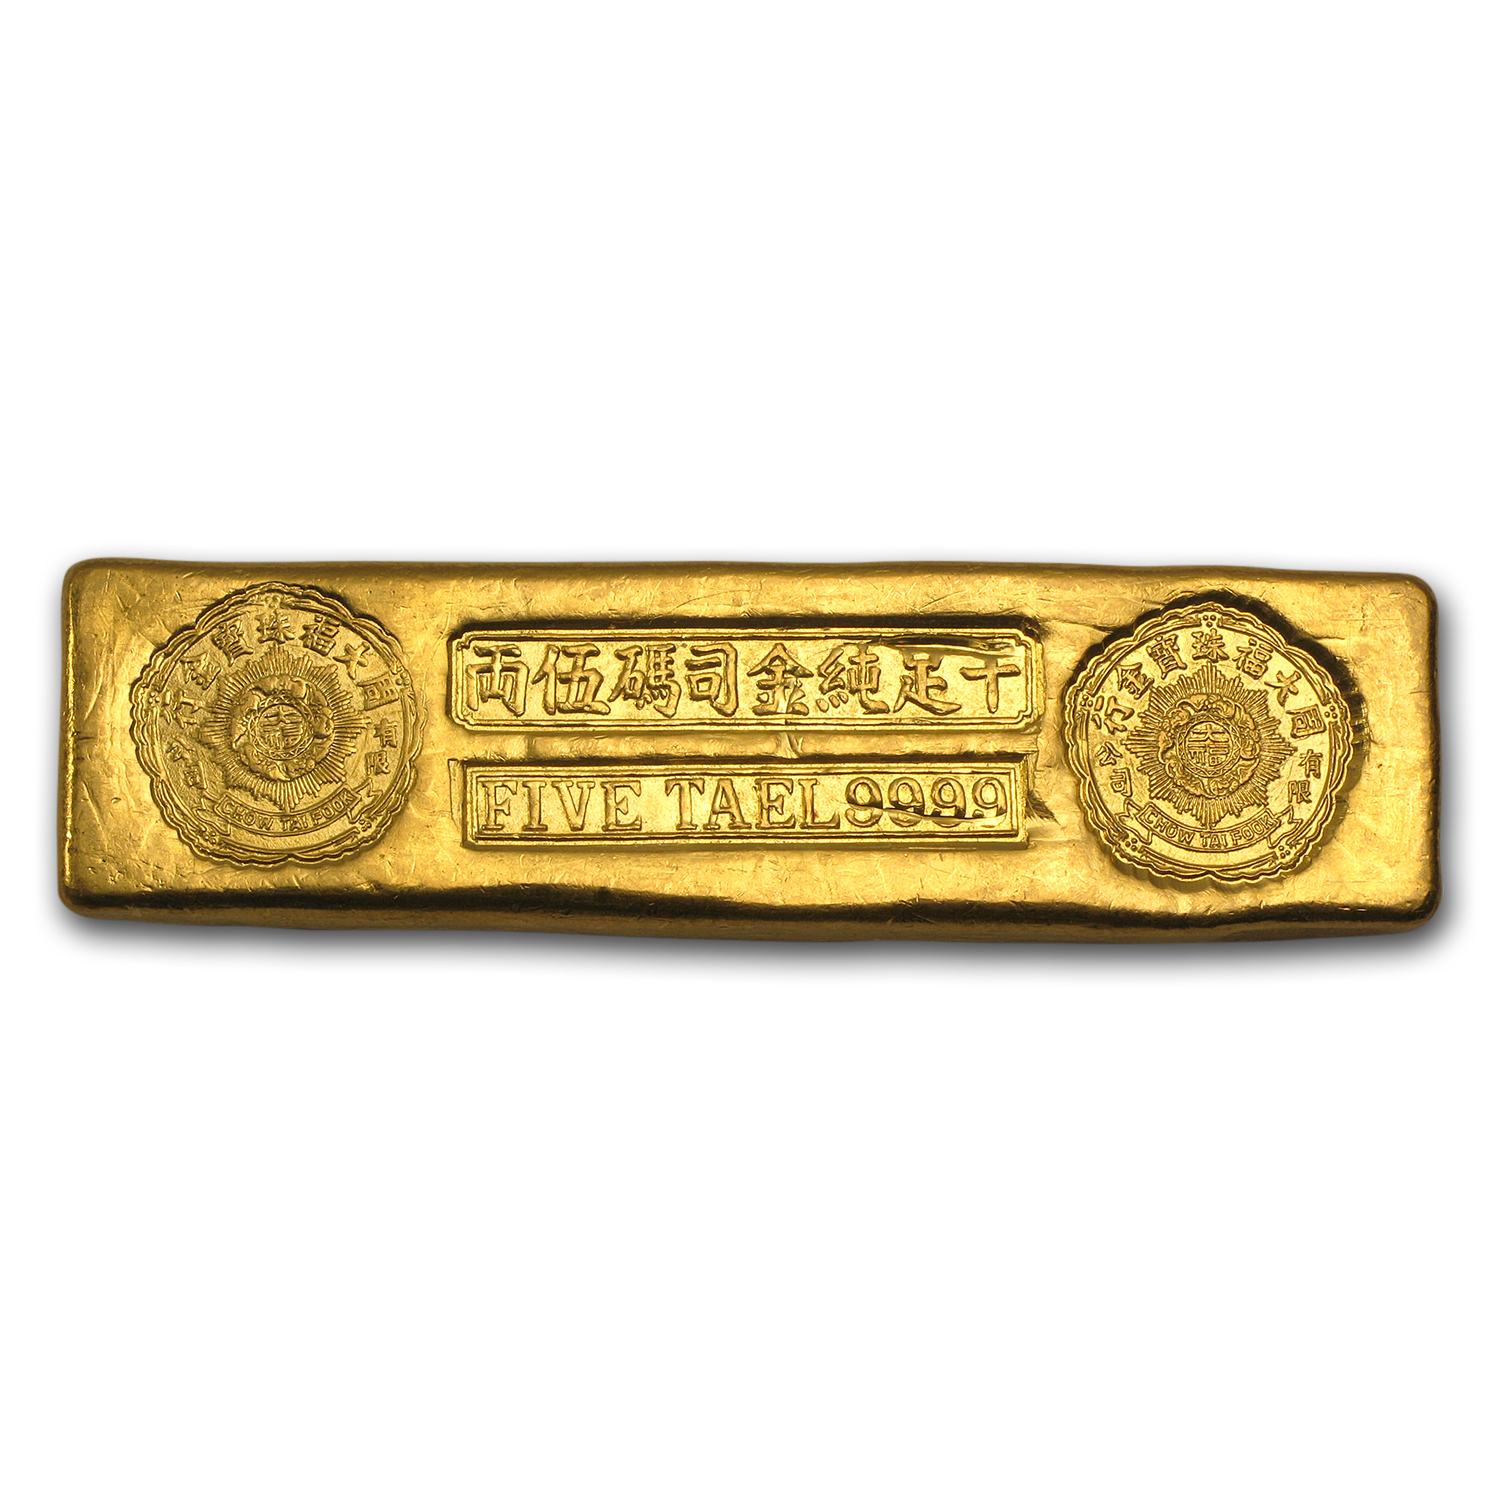 5 Tael Gold Bar - Chinese Biscuit (6.01 oz)